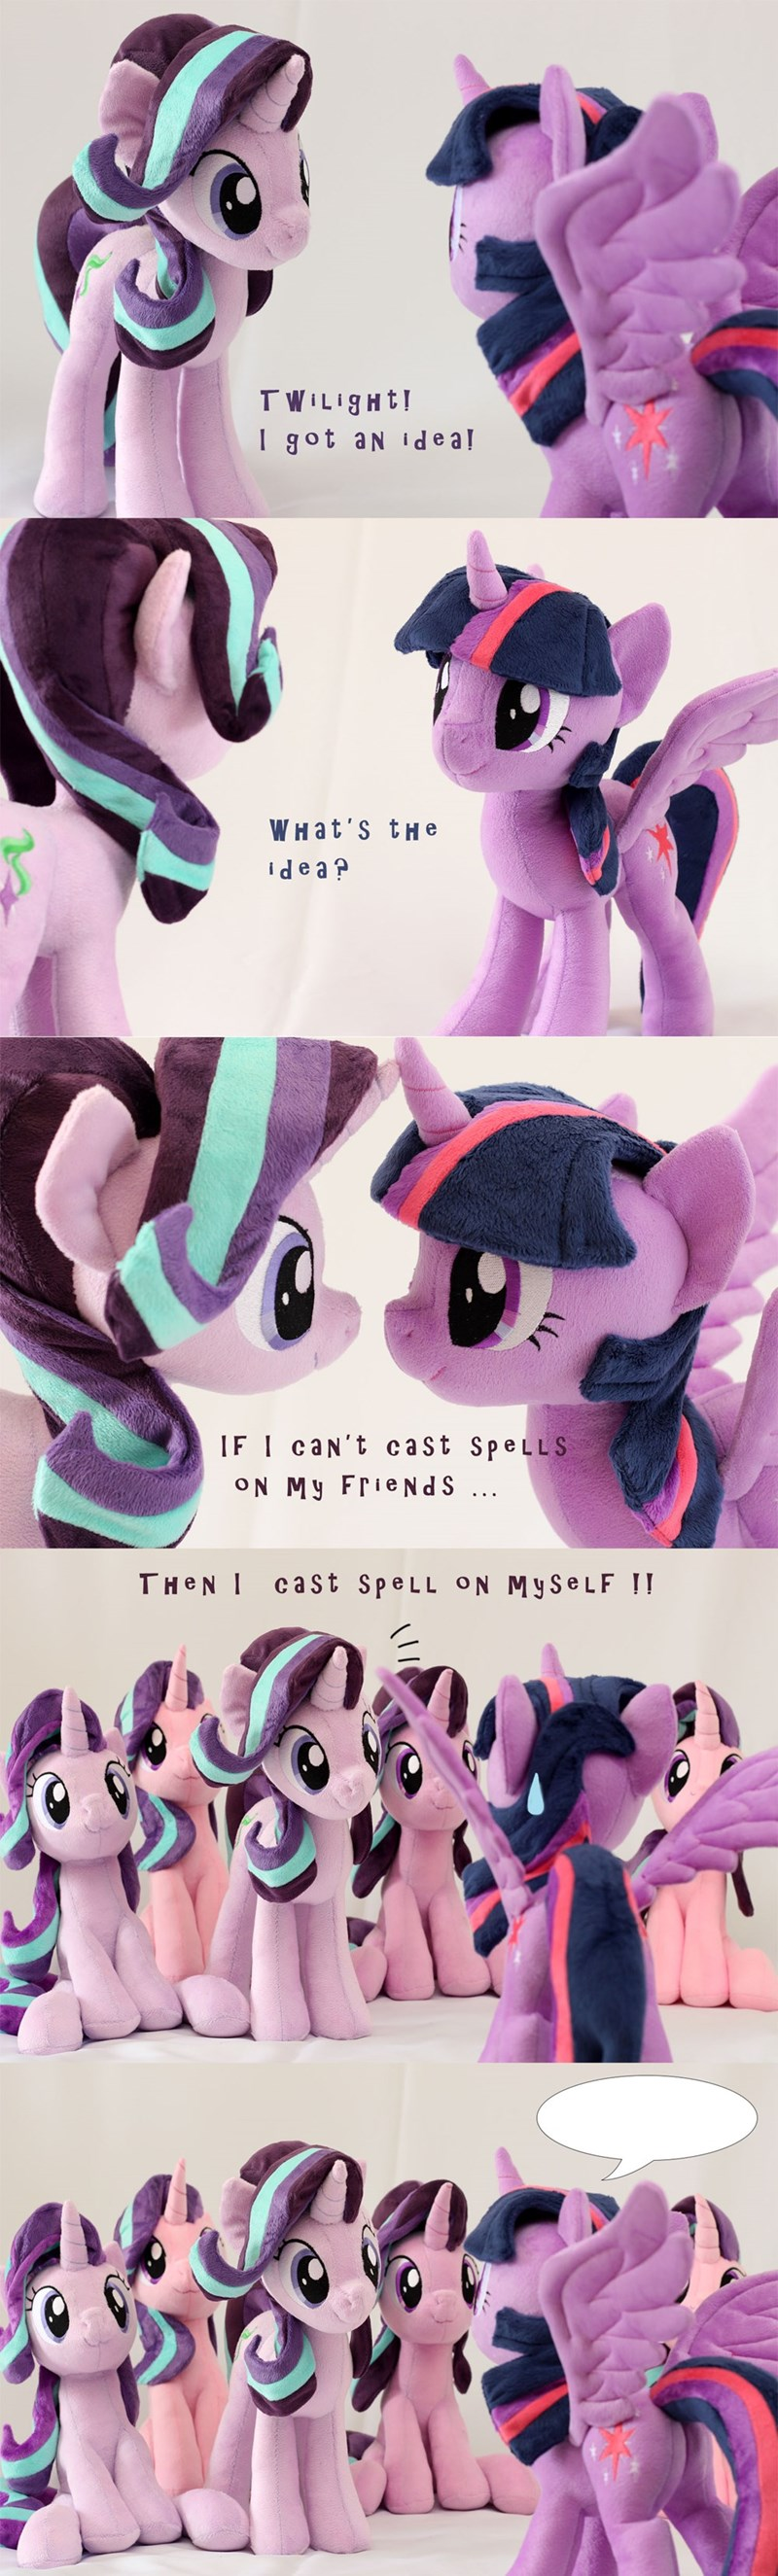 Plush,toys,starlight glimmer,twilight sparkle,caption contest,comic